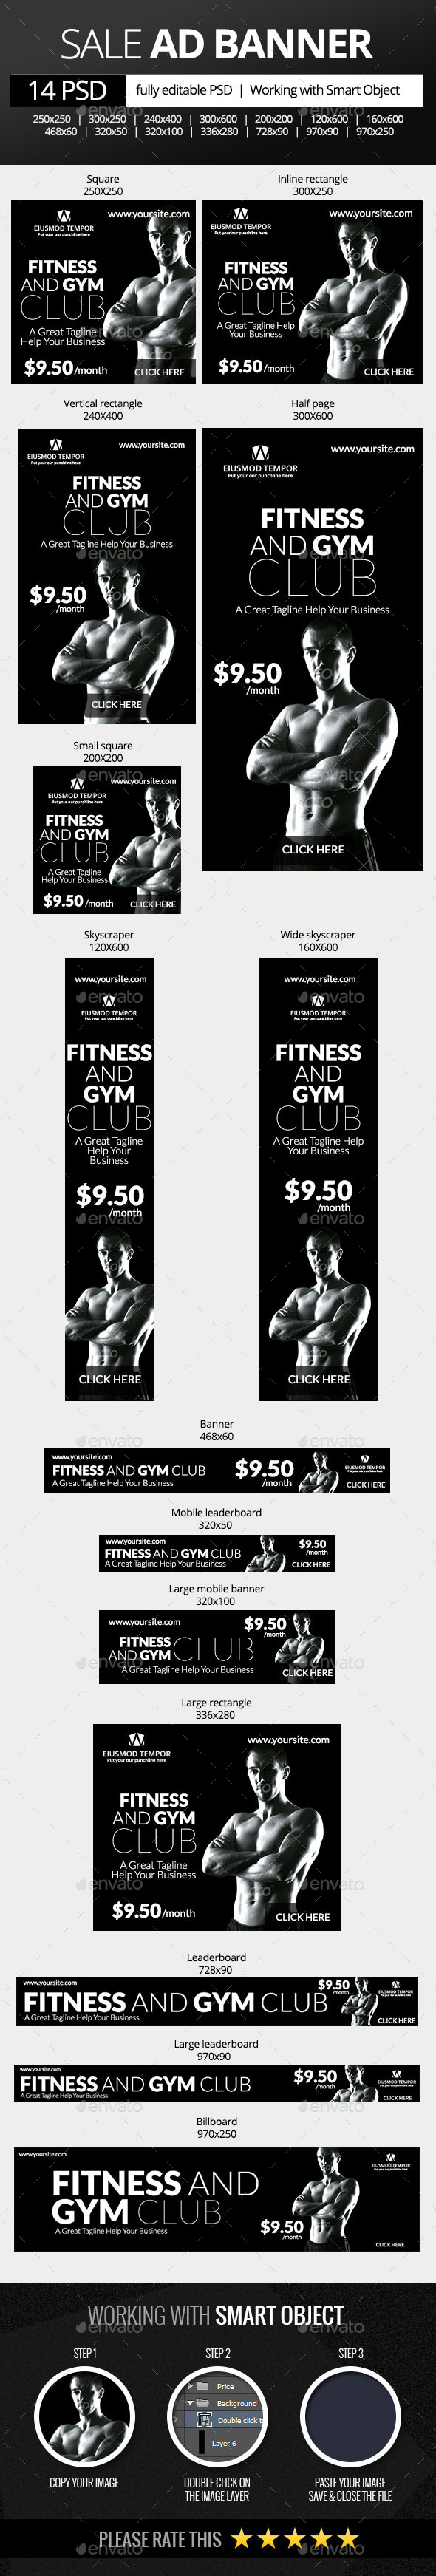 Fitness and Gym Club Web Banners - Banners & Ads Web Elements